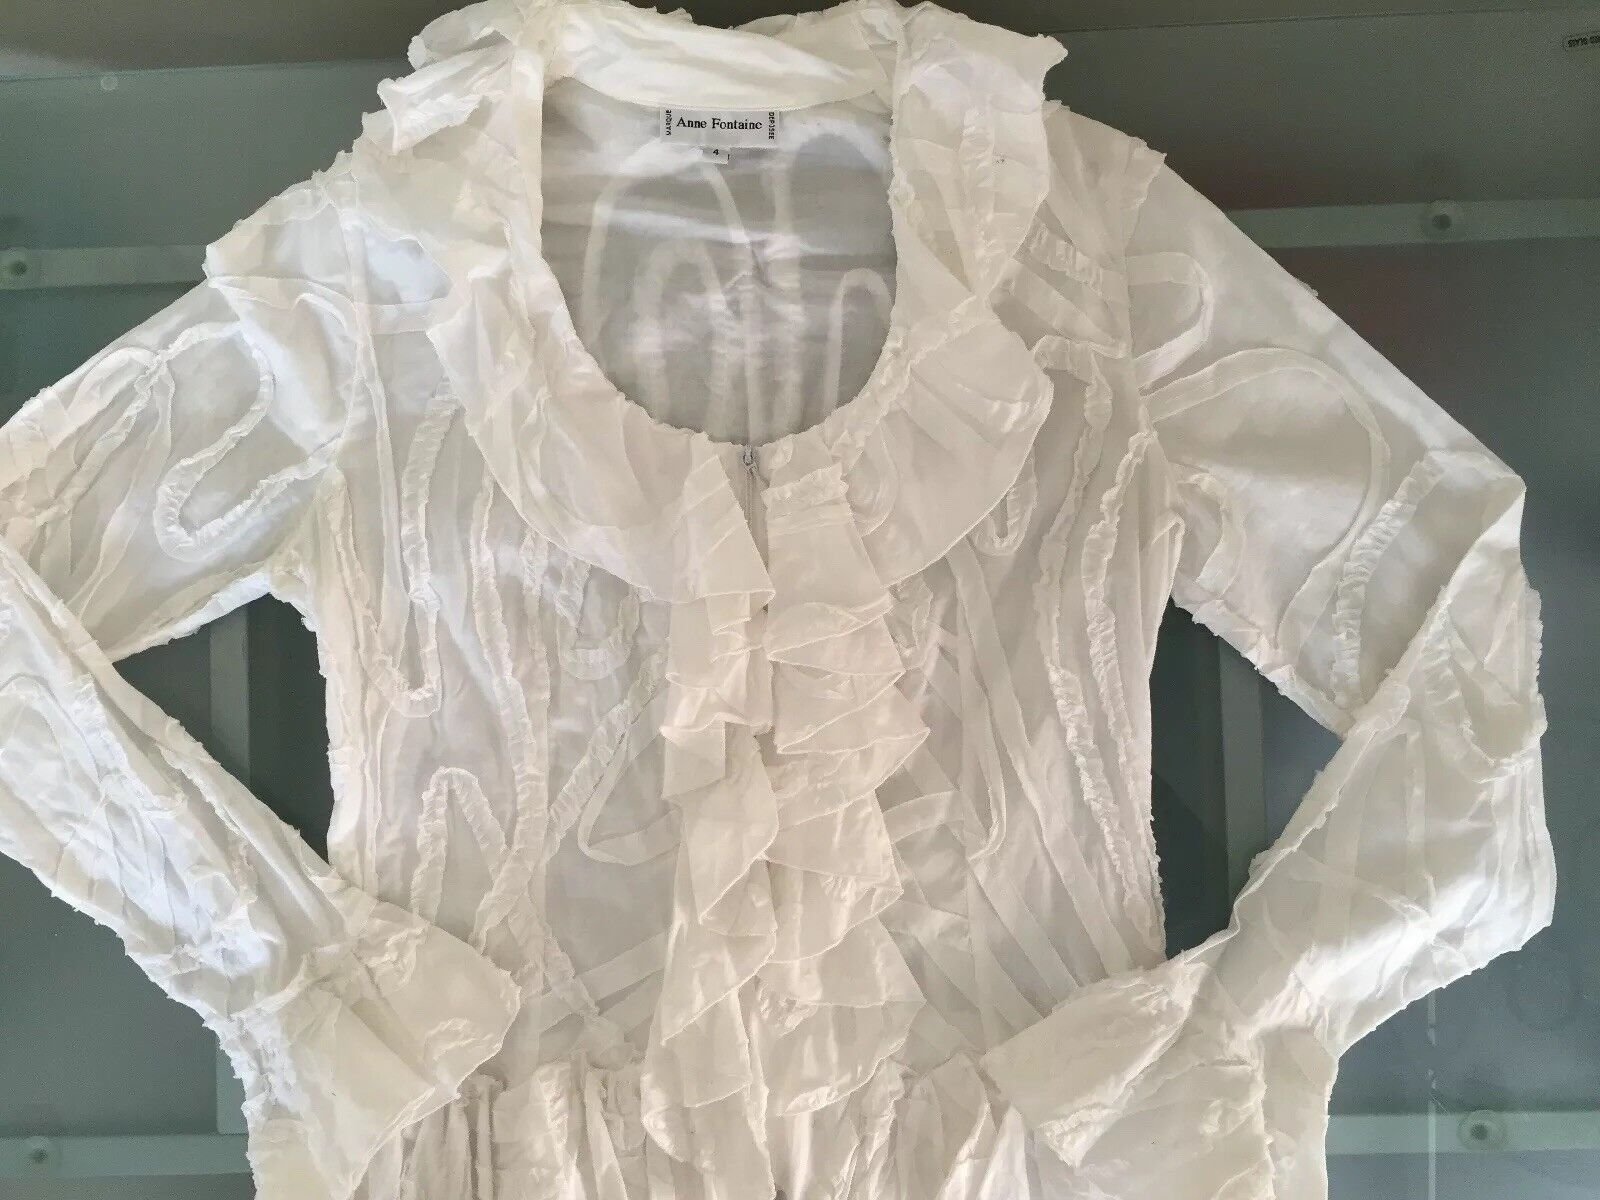 Anne Fontaine White Ruffled Blouse-Sz.4 - image 4